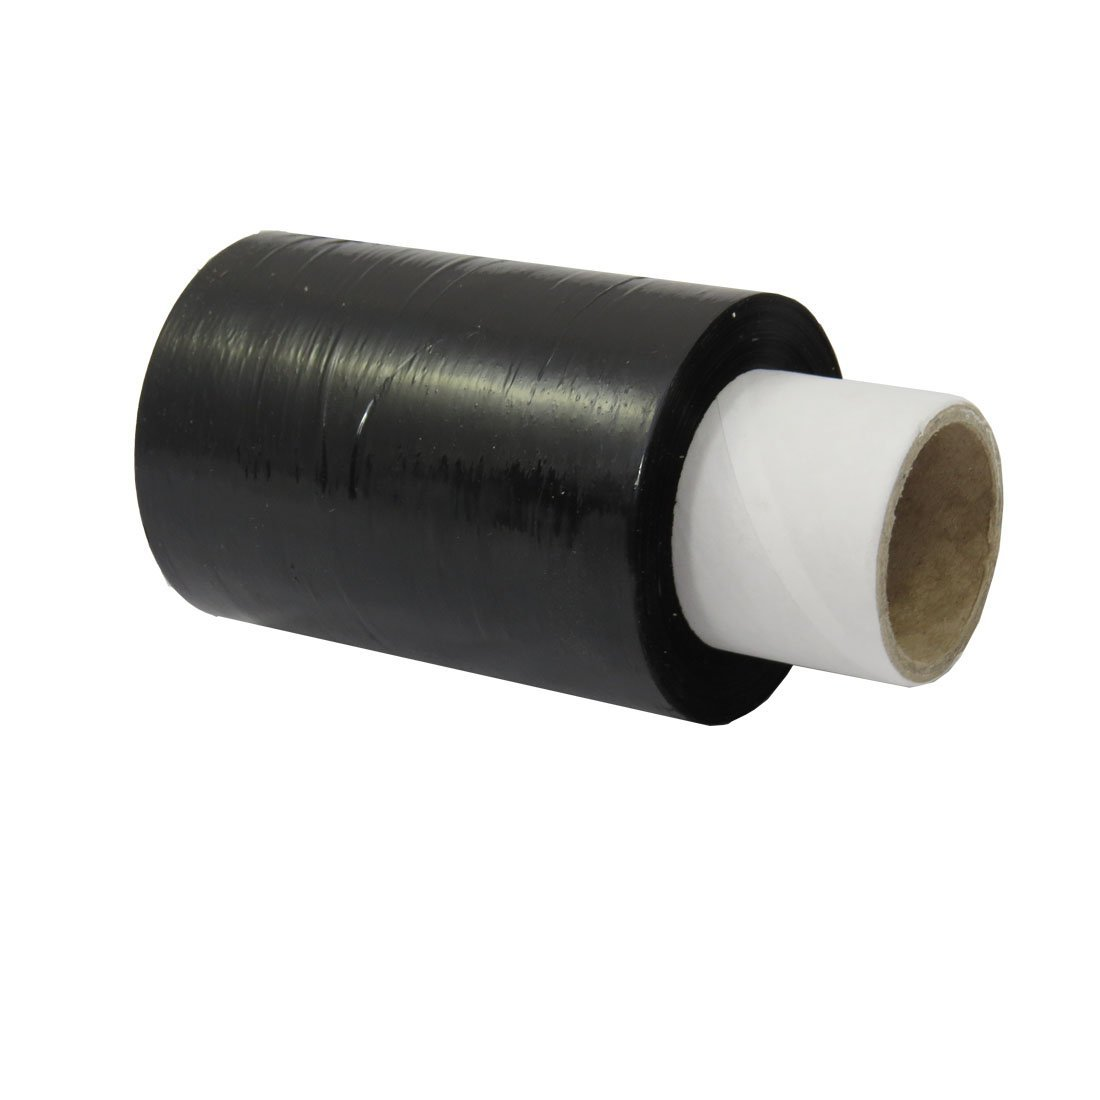 Triplast 100 mm x 150 m Mini Pallet Stretch Shrink Wrap - Black MS150